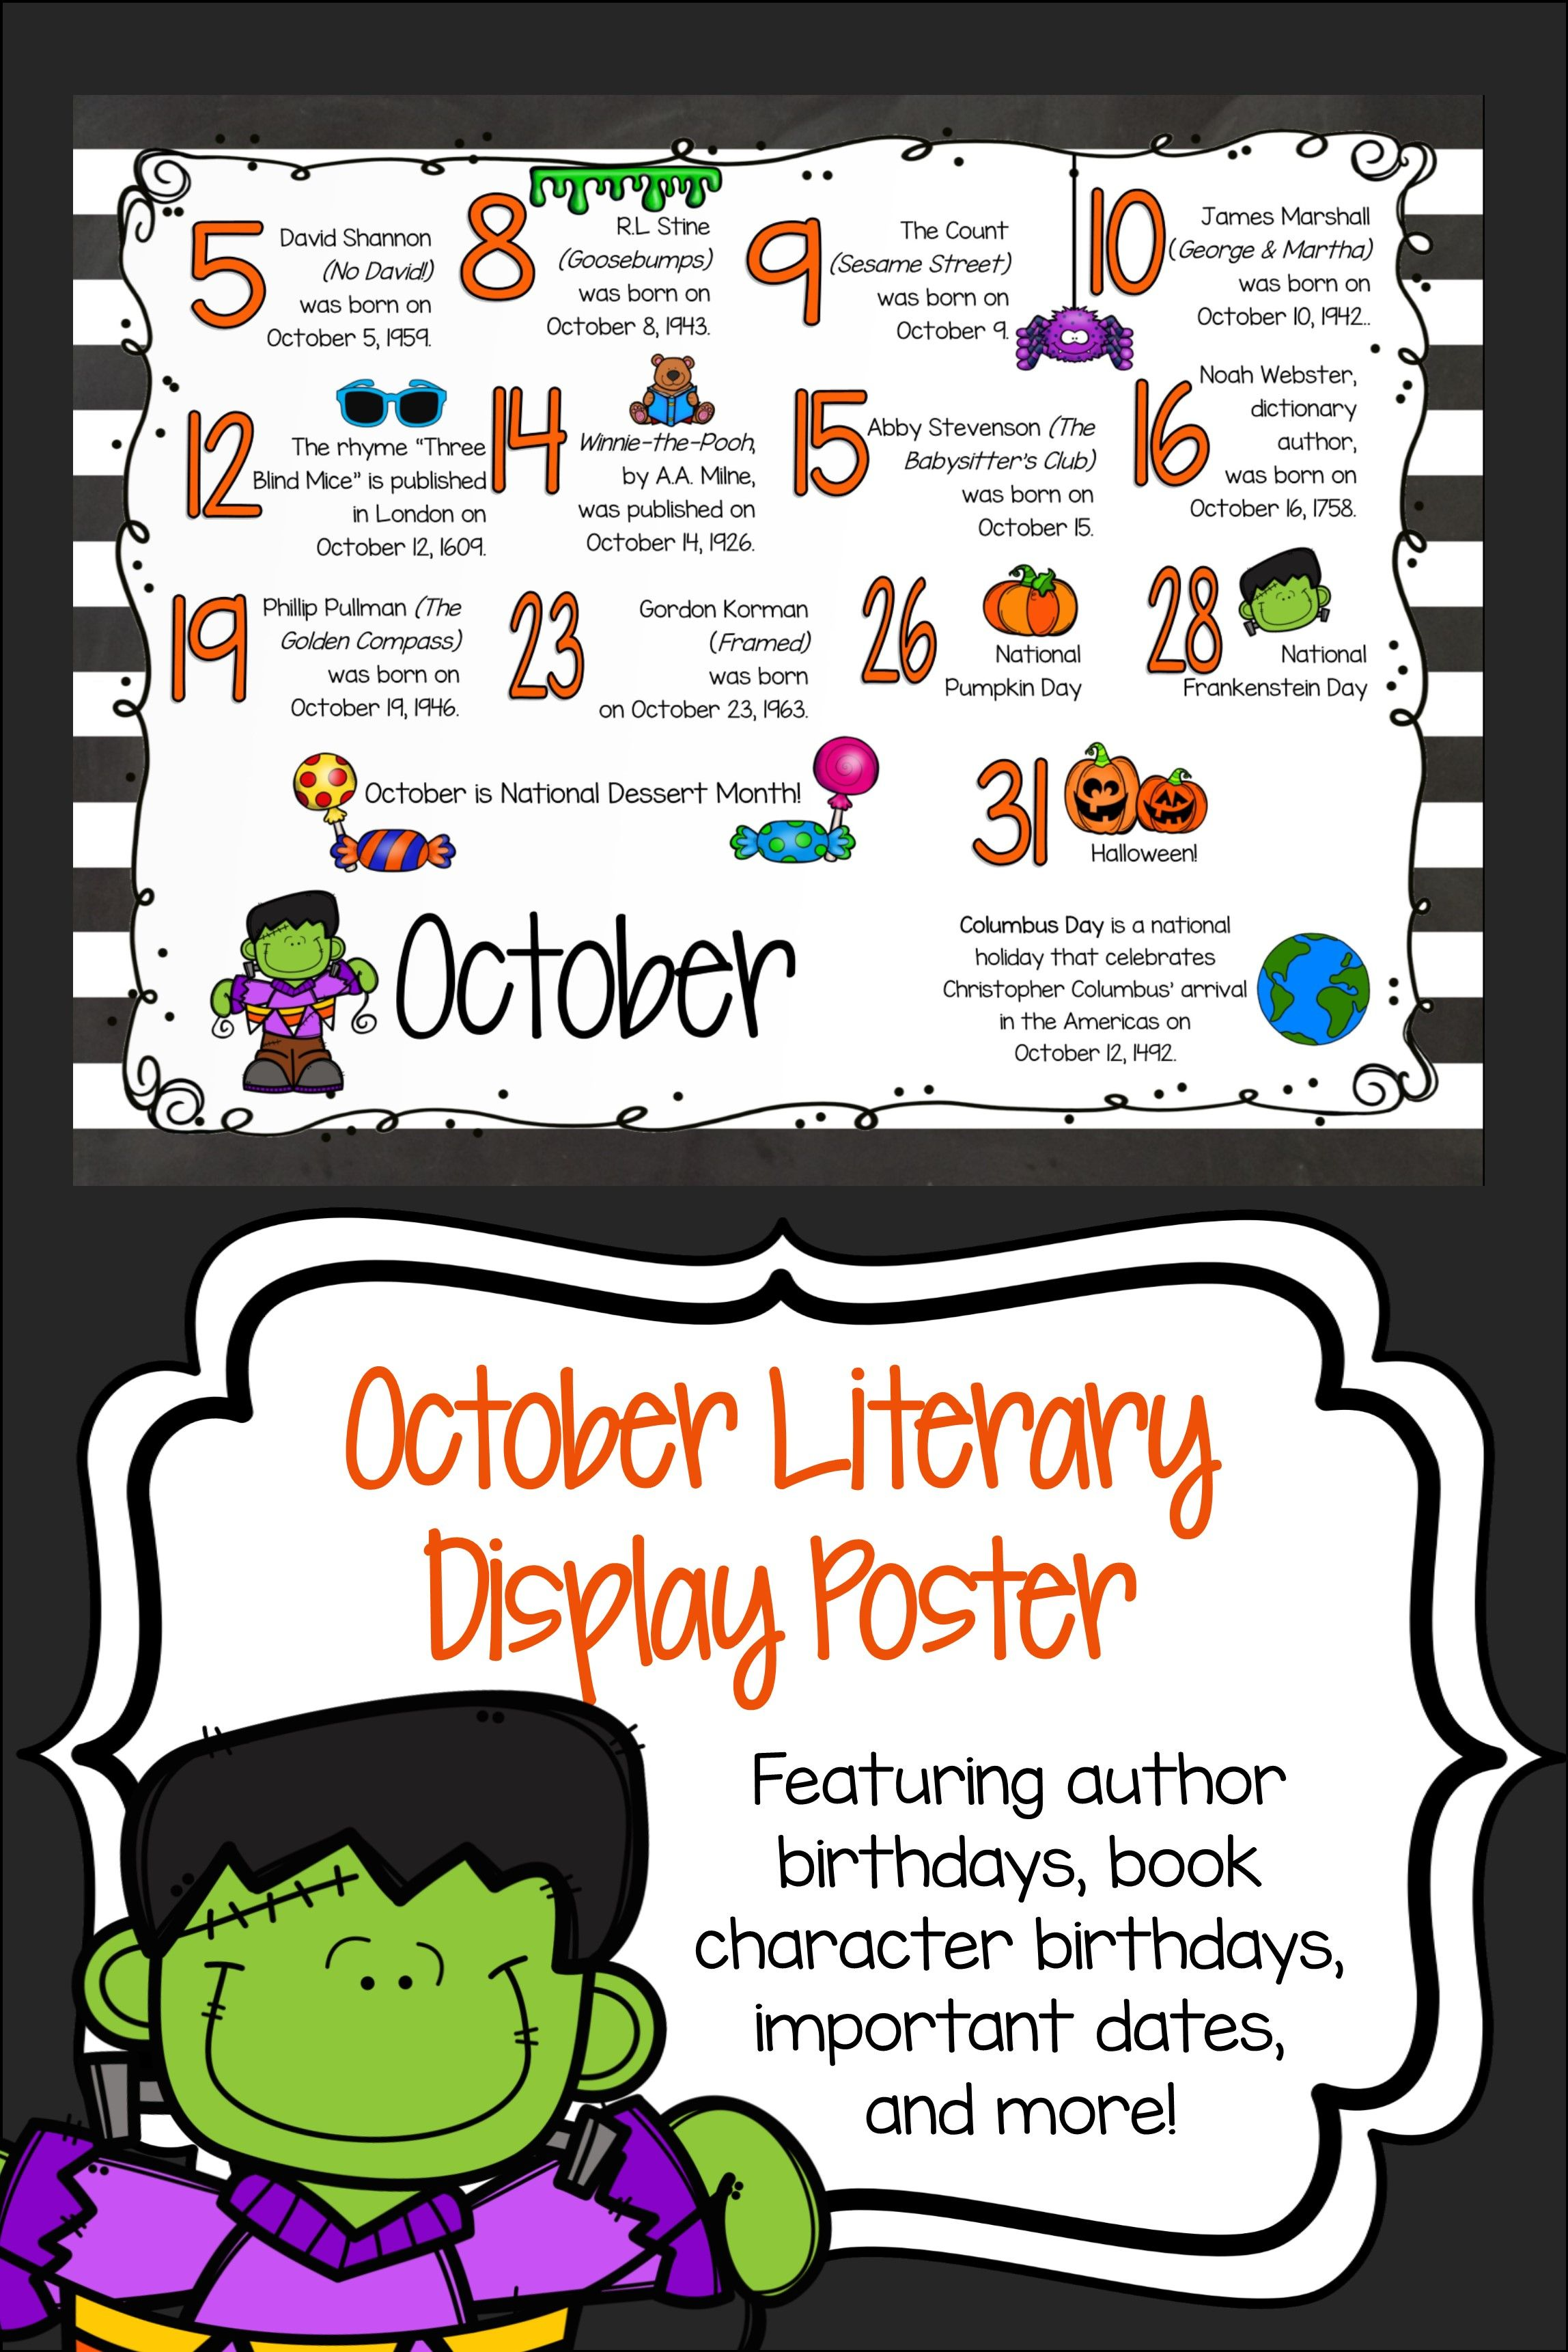 Marshall Center Halloween 2020 Author Birthday, Literary Events and Special Days Display Poster